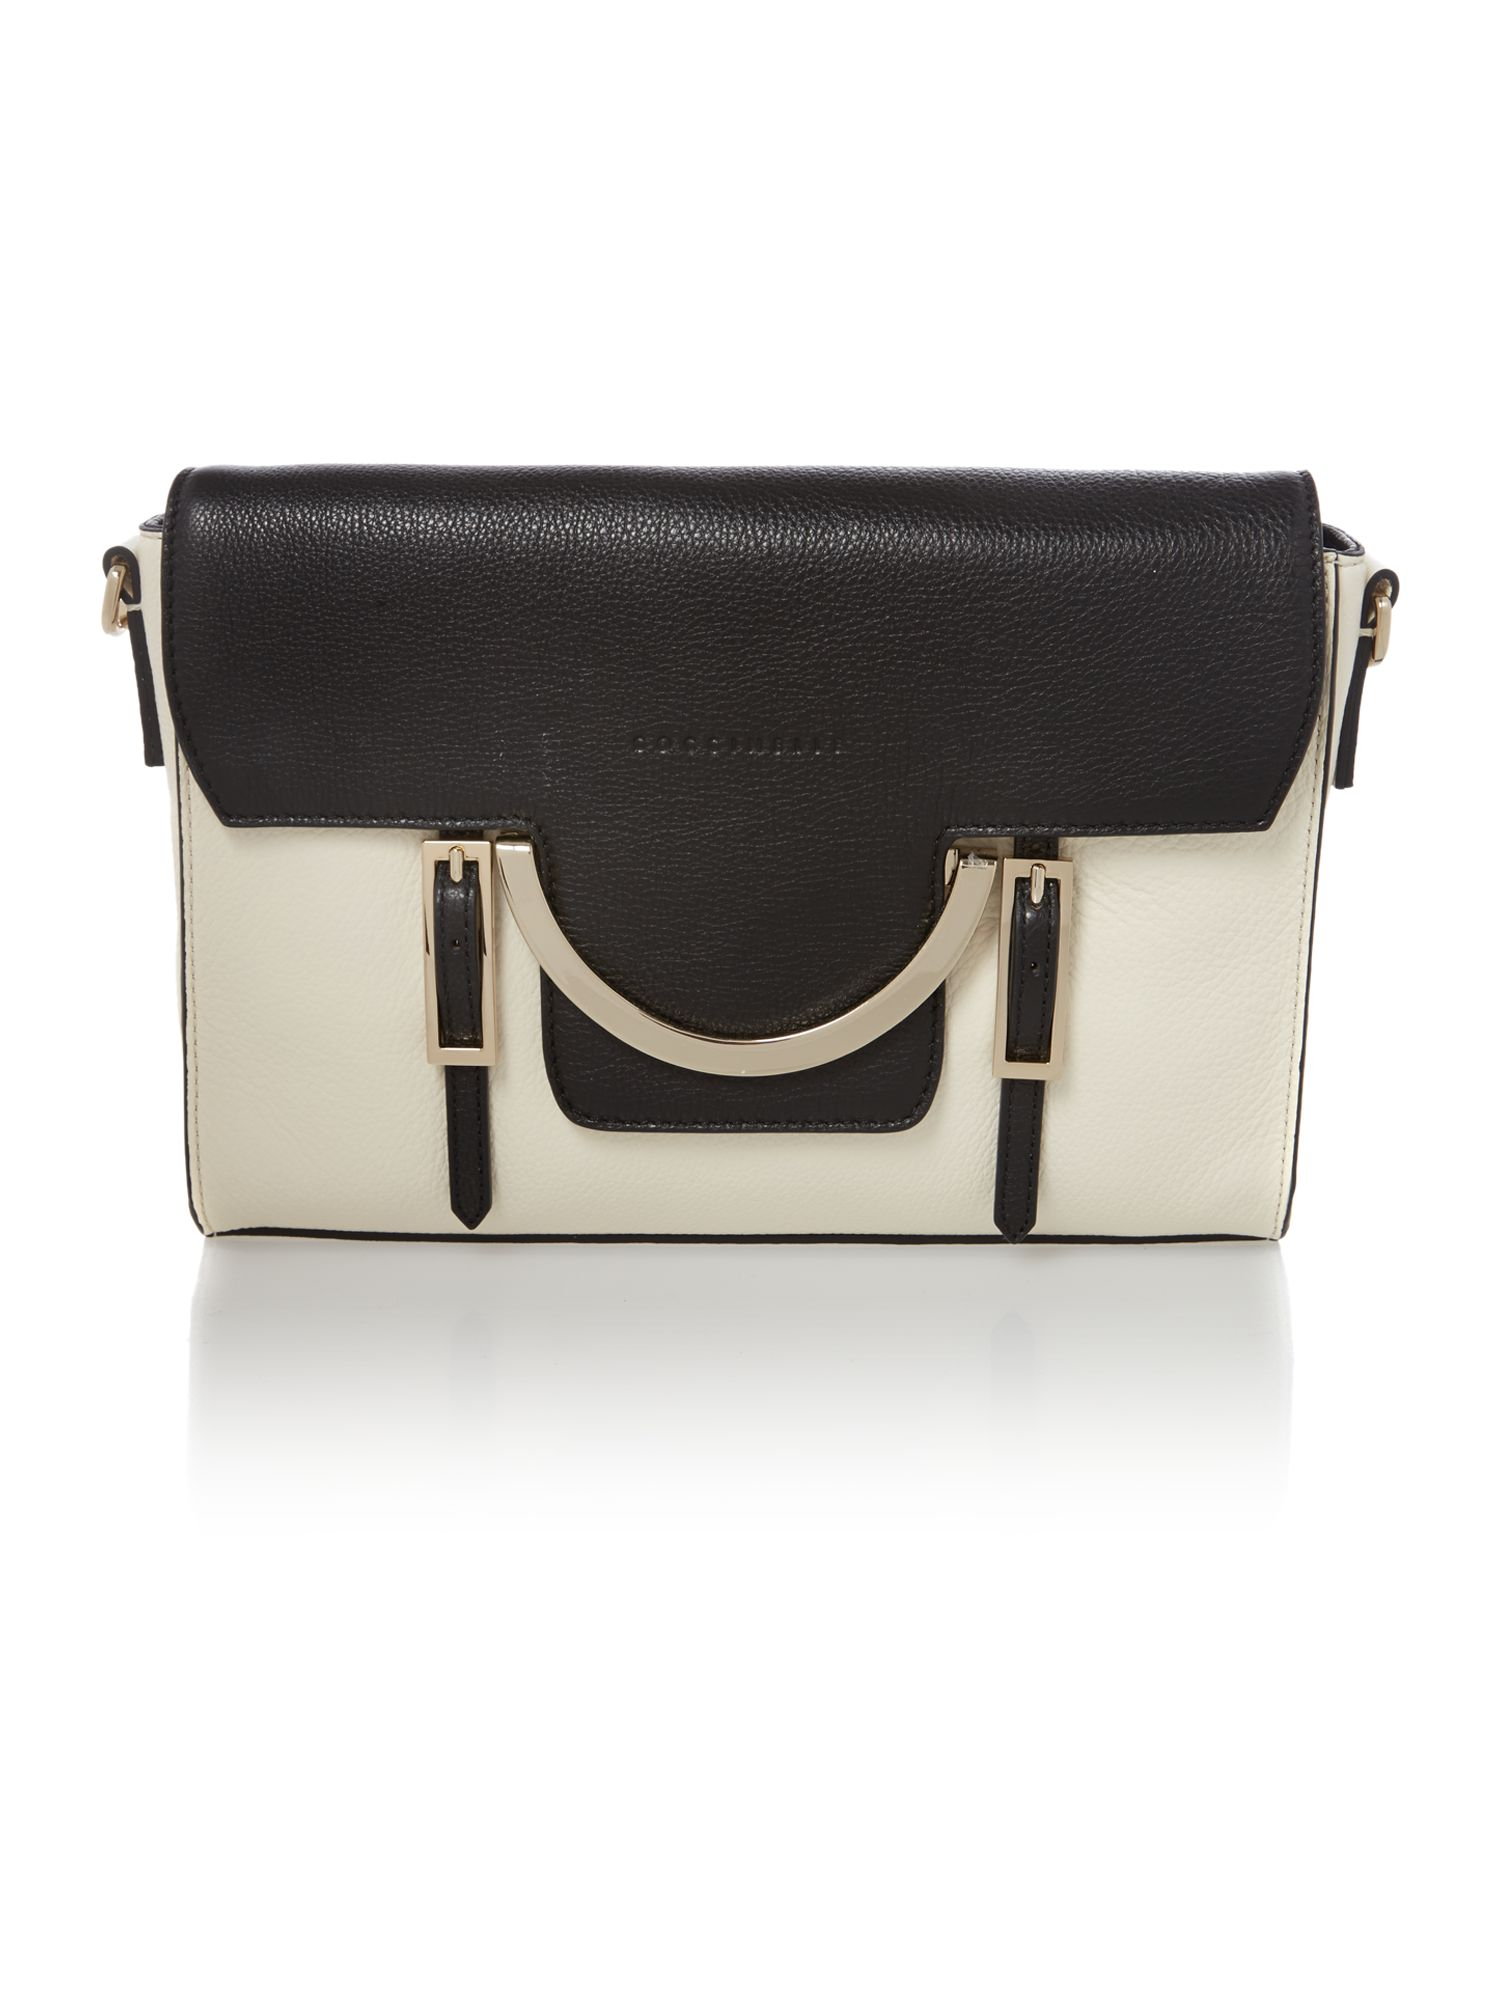 Celeste black/cream medium cross body bag